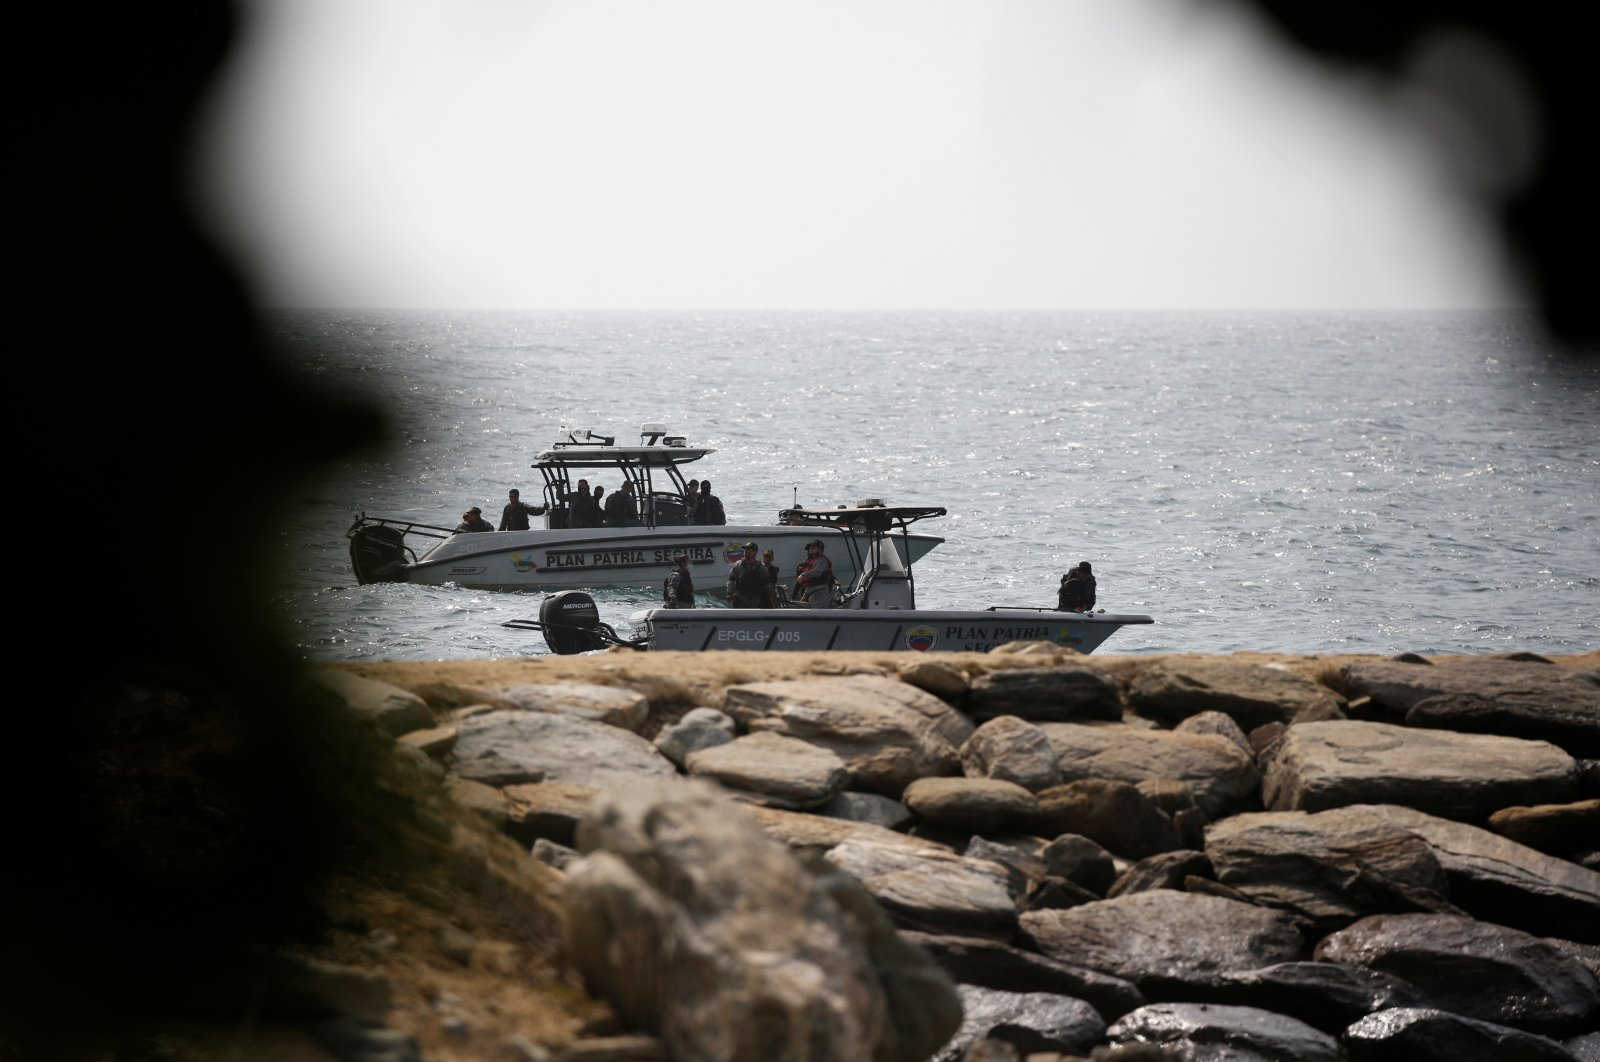 """Venezuelan security forces boats are seen after Venezuela's government announced a failed """"mercenary"""" incursion, in Macuto, Venezuela, May 3, 2020. (Reuters Photo)"""